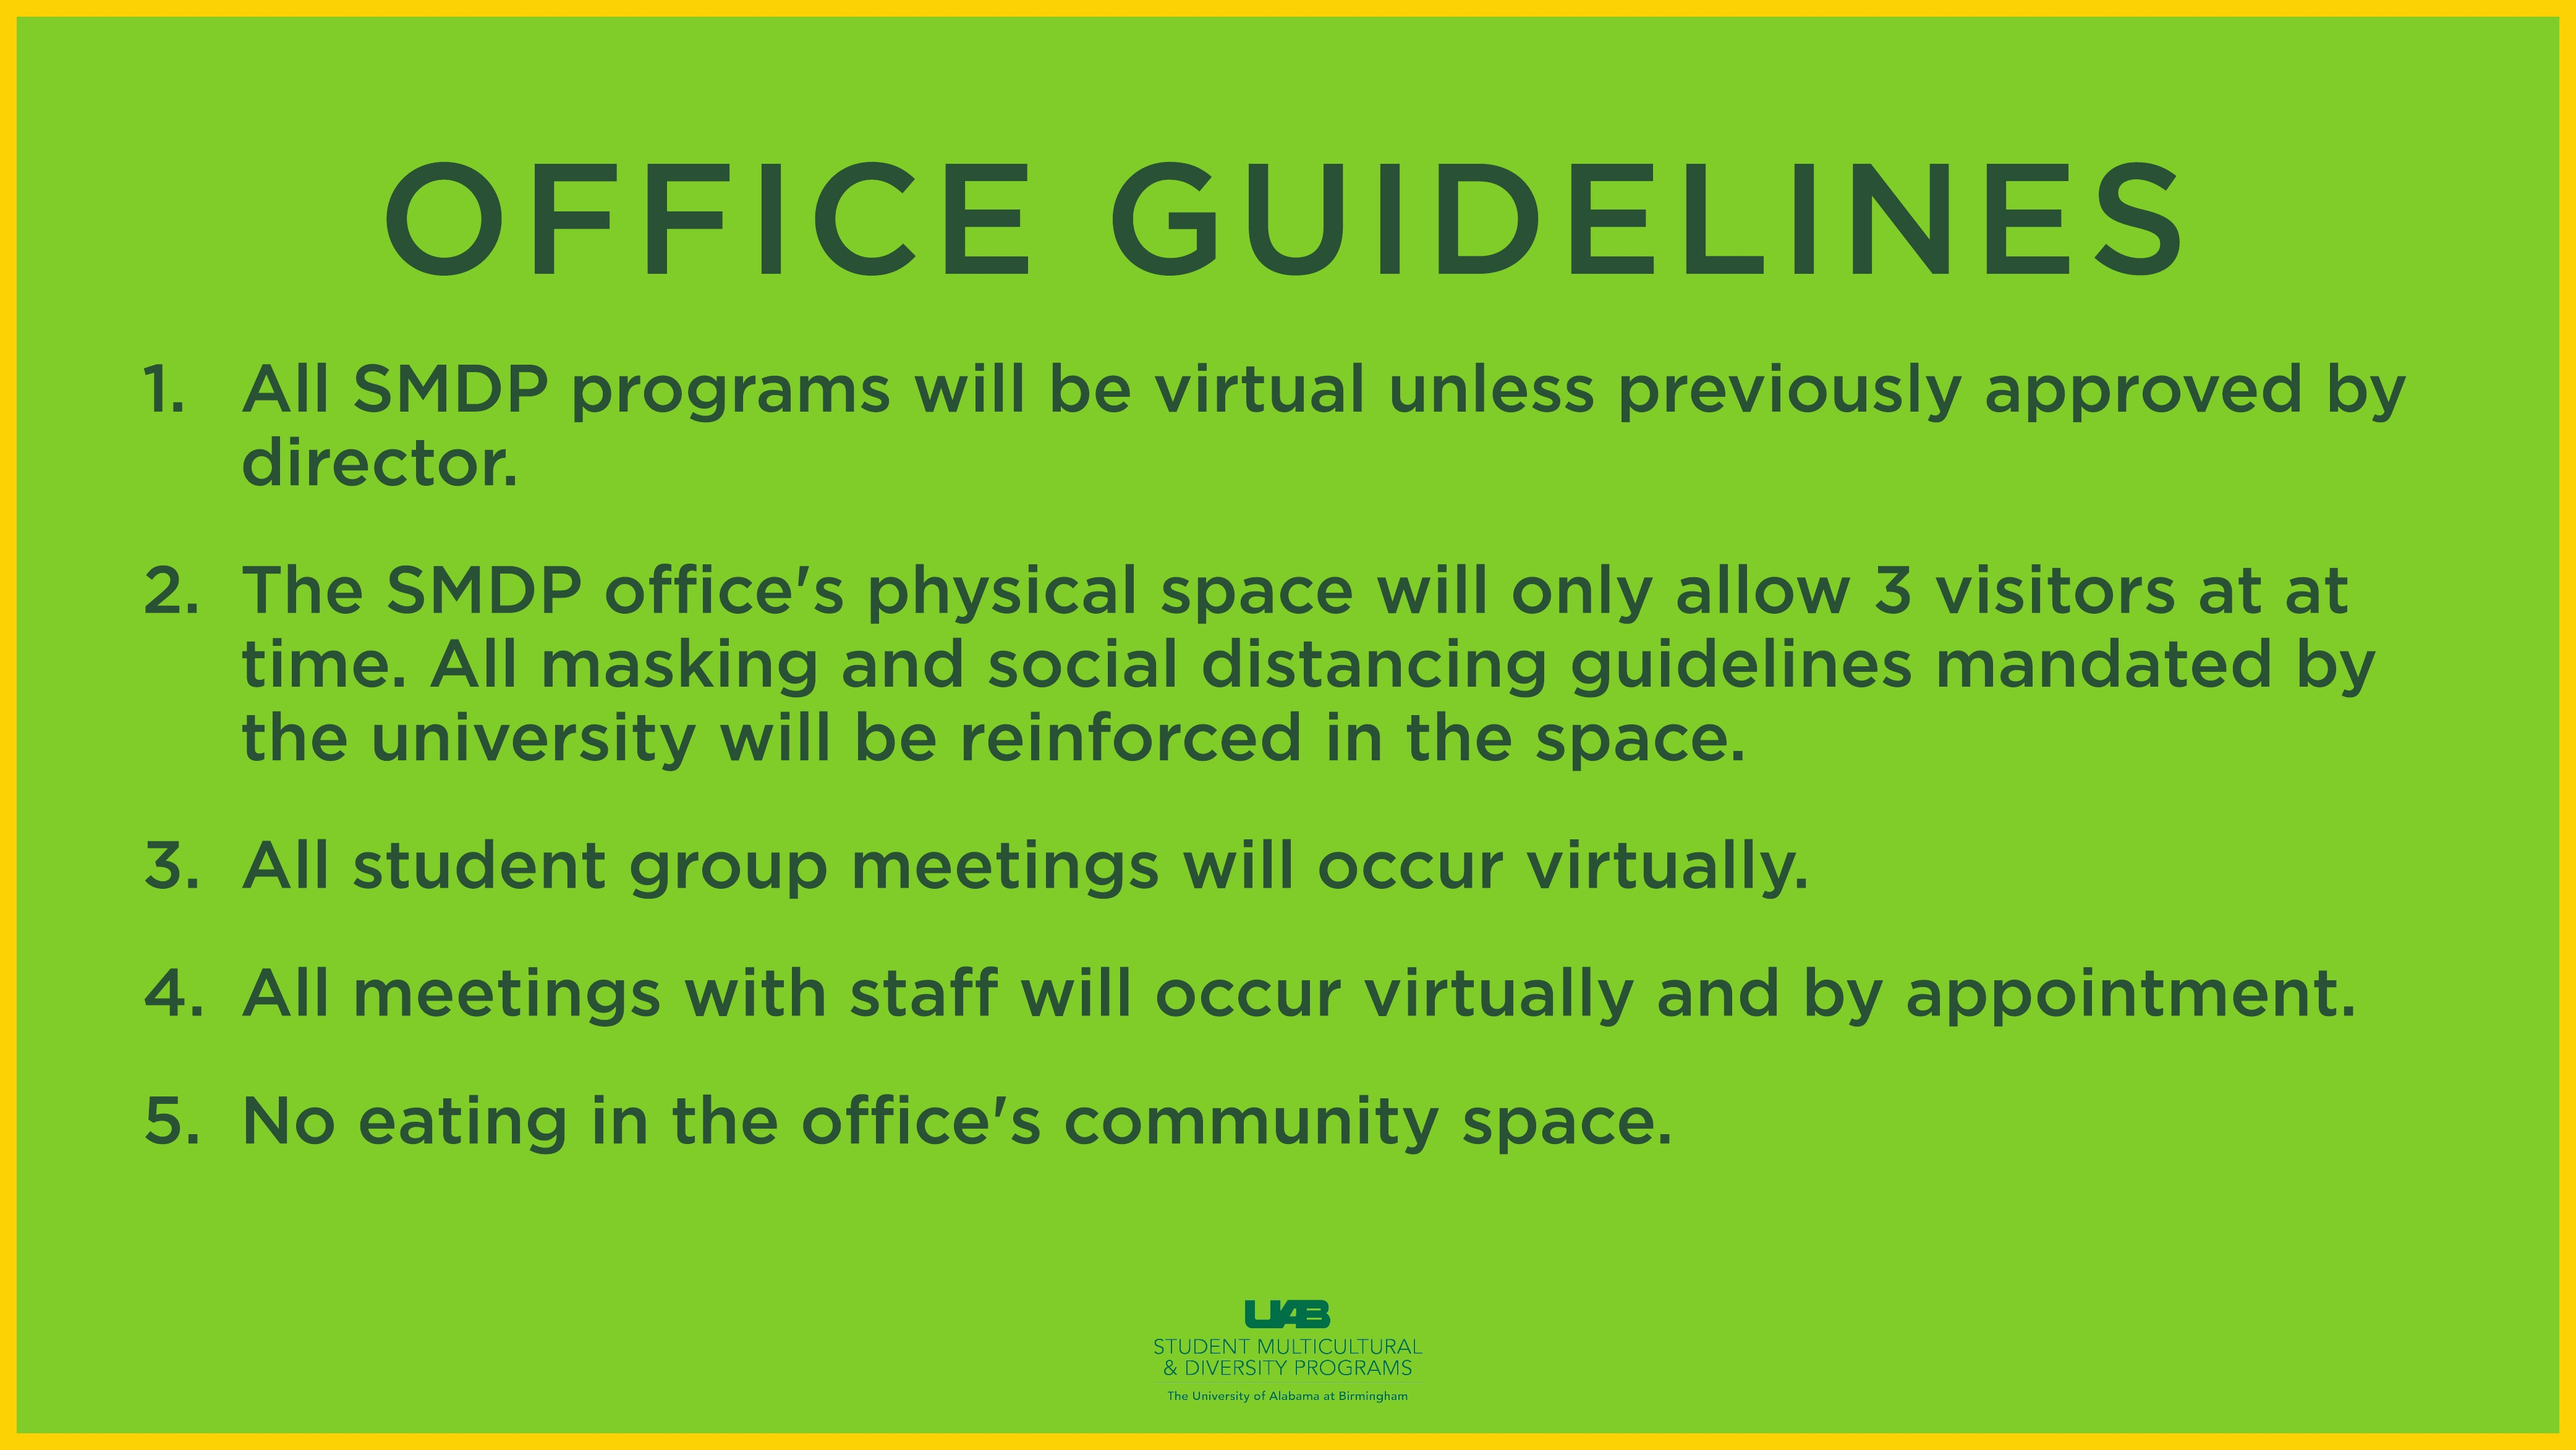 SMDP Office Guidelines